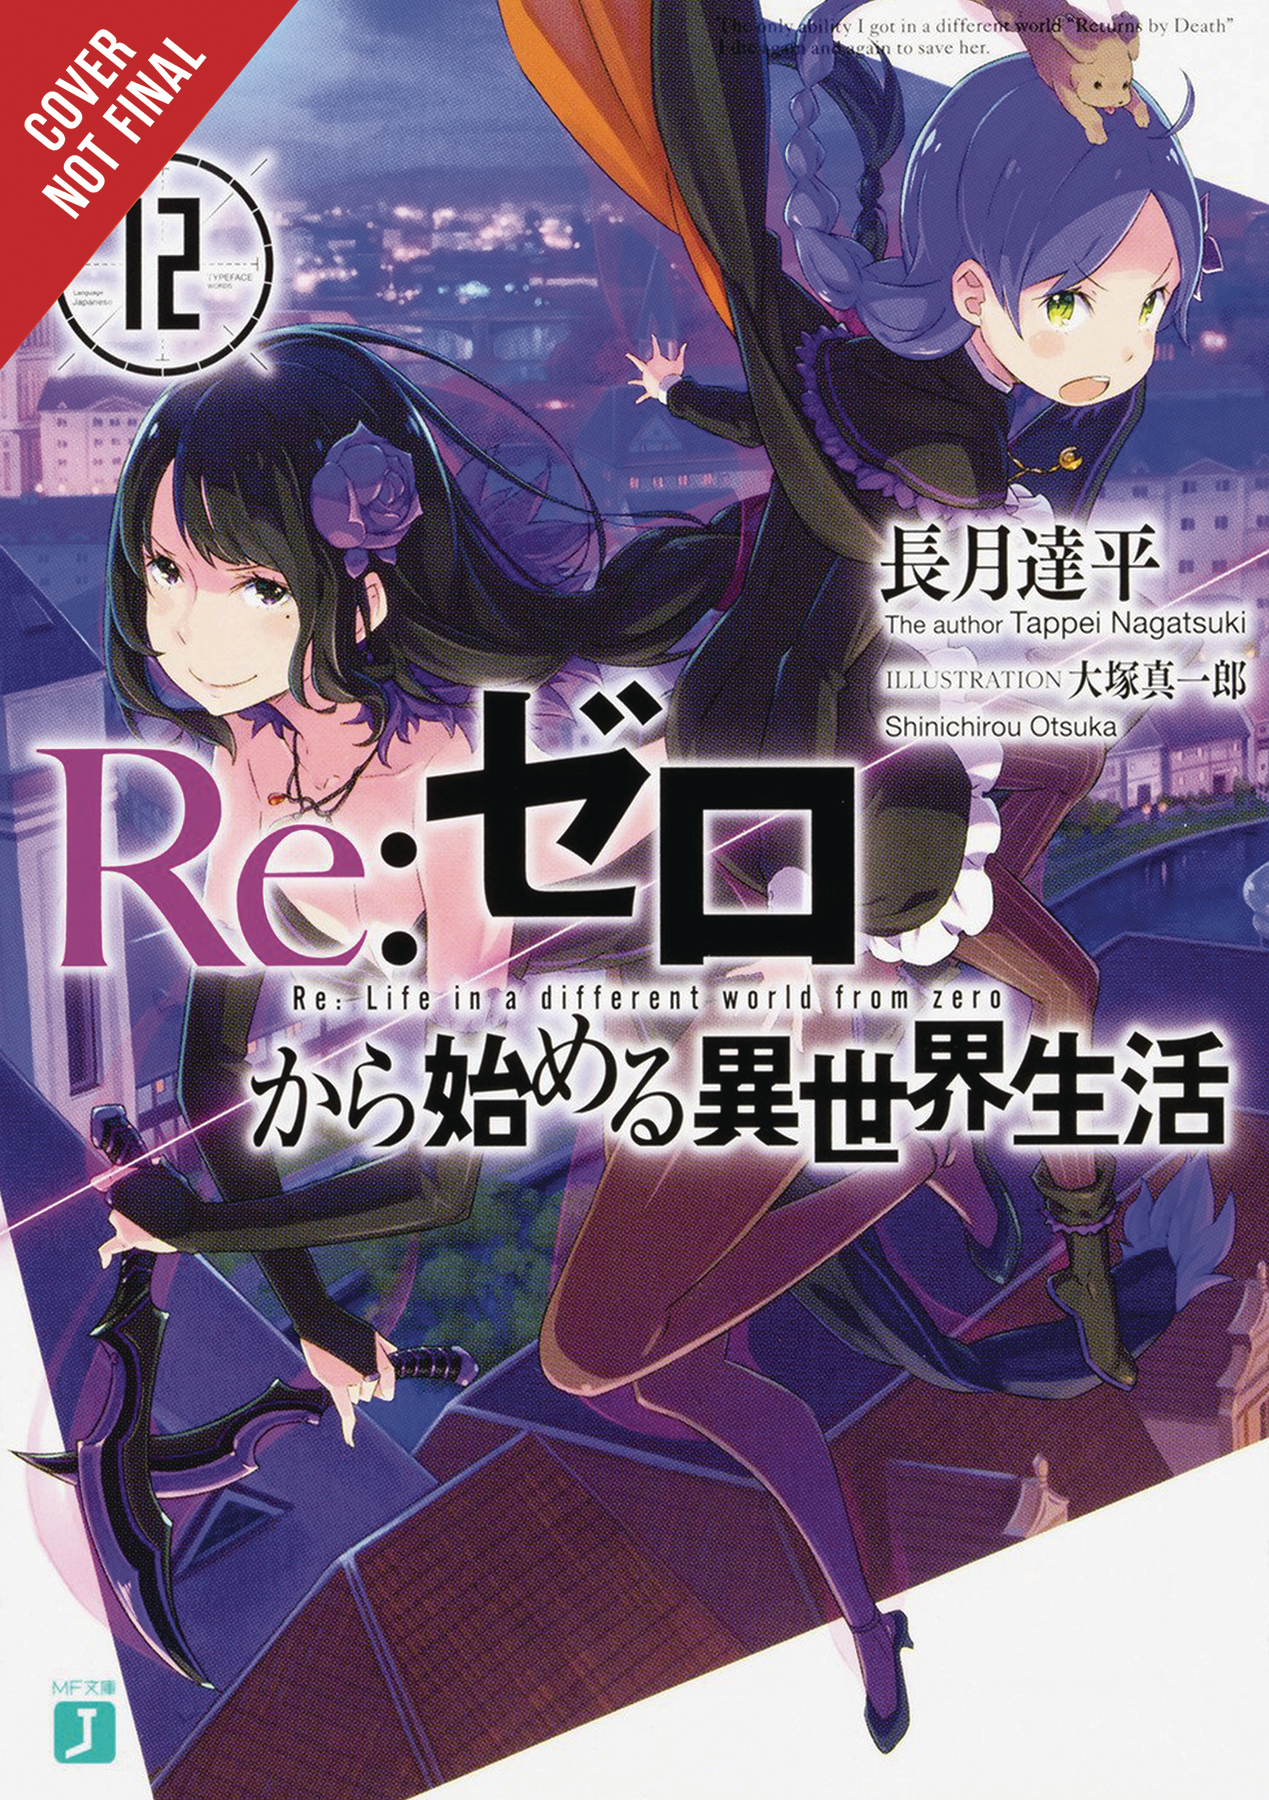 RE ZERO SLIAW LIGHT NOVEL SC VOL 12